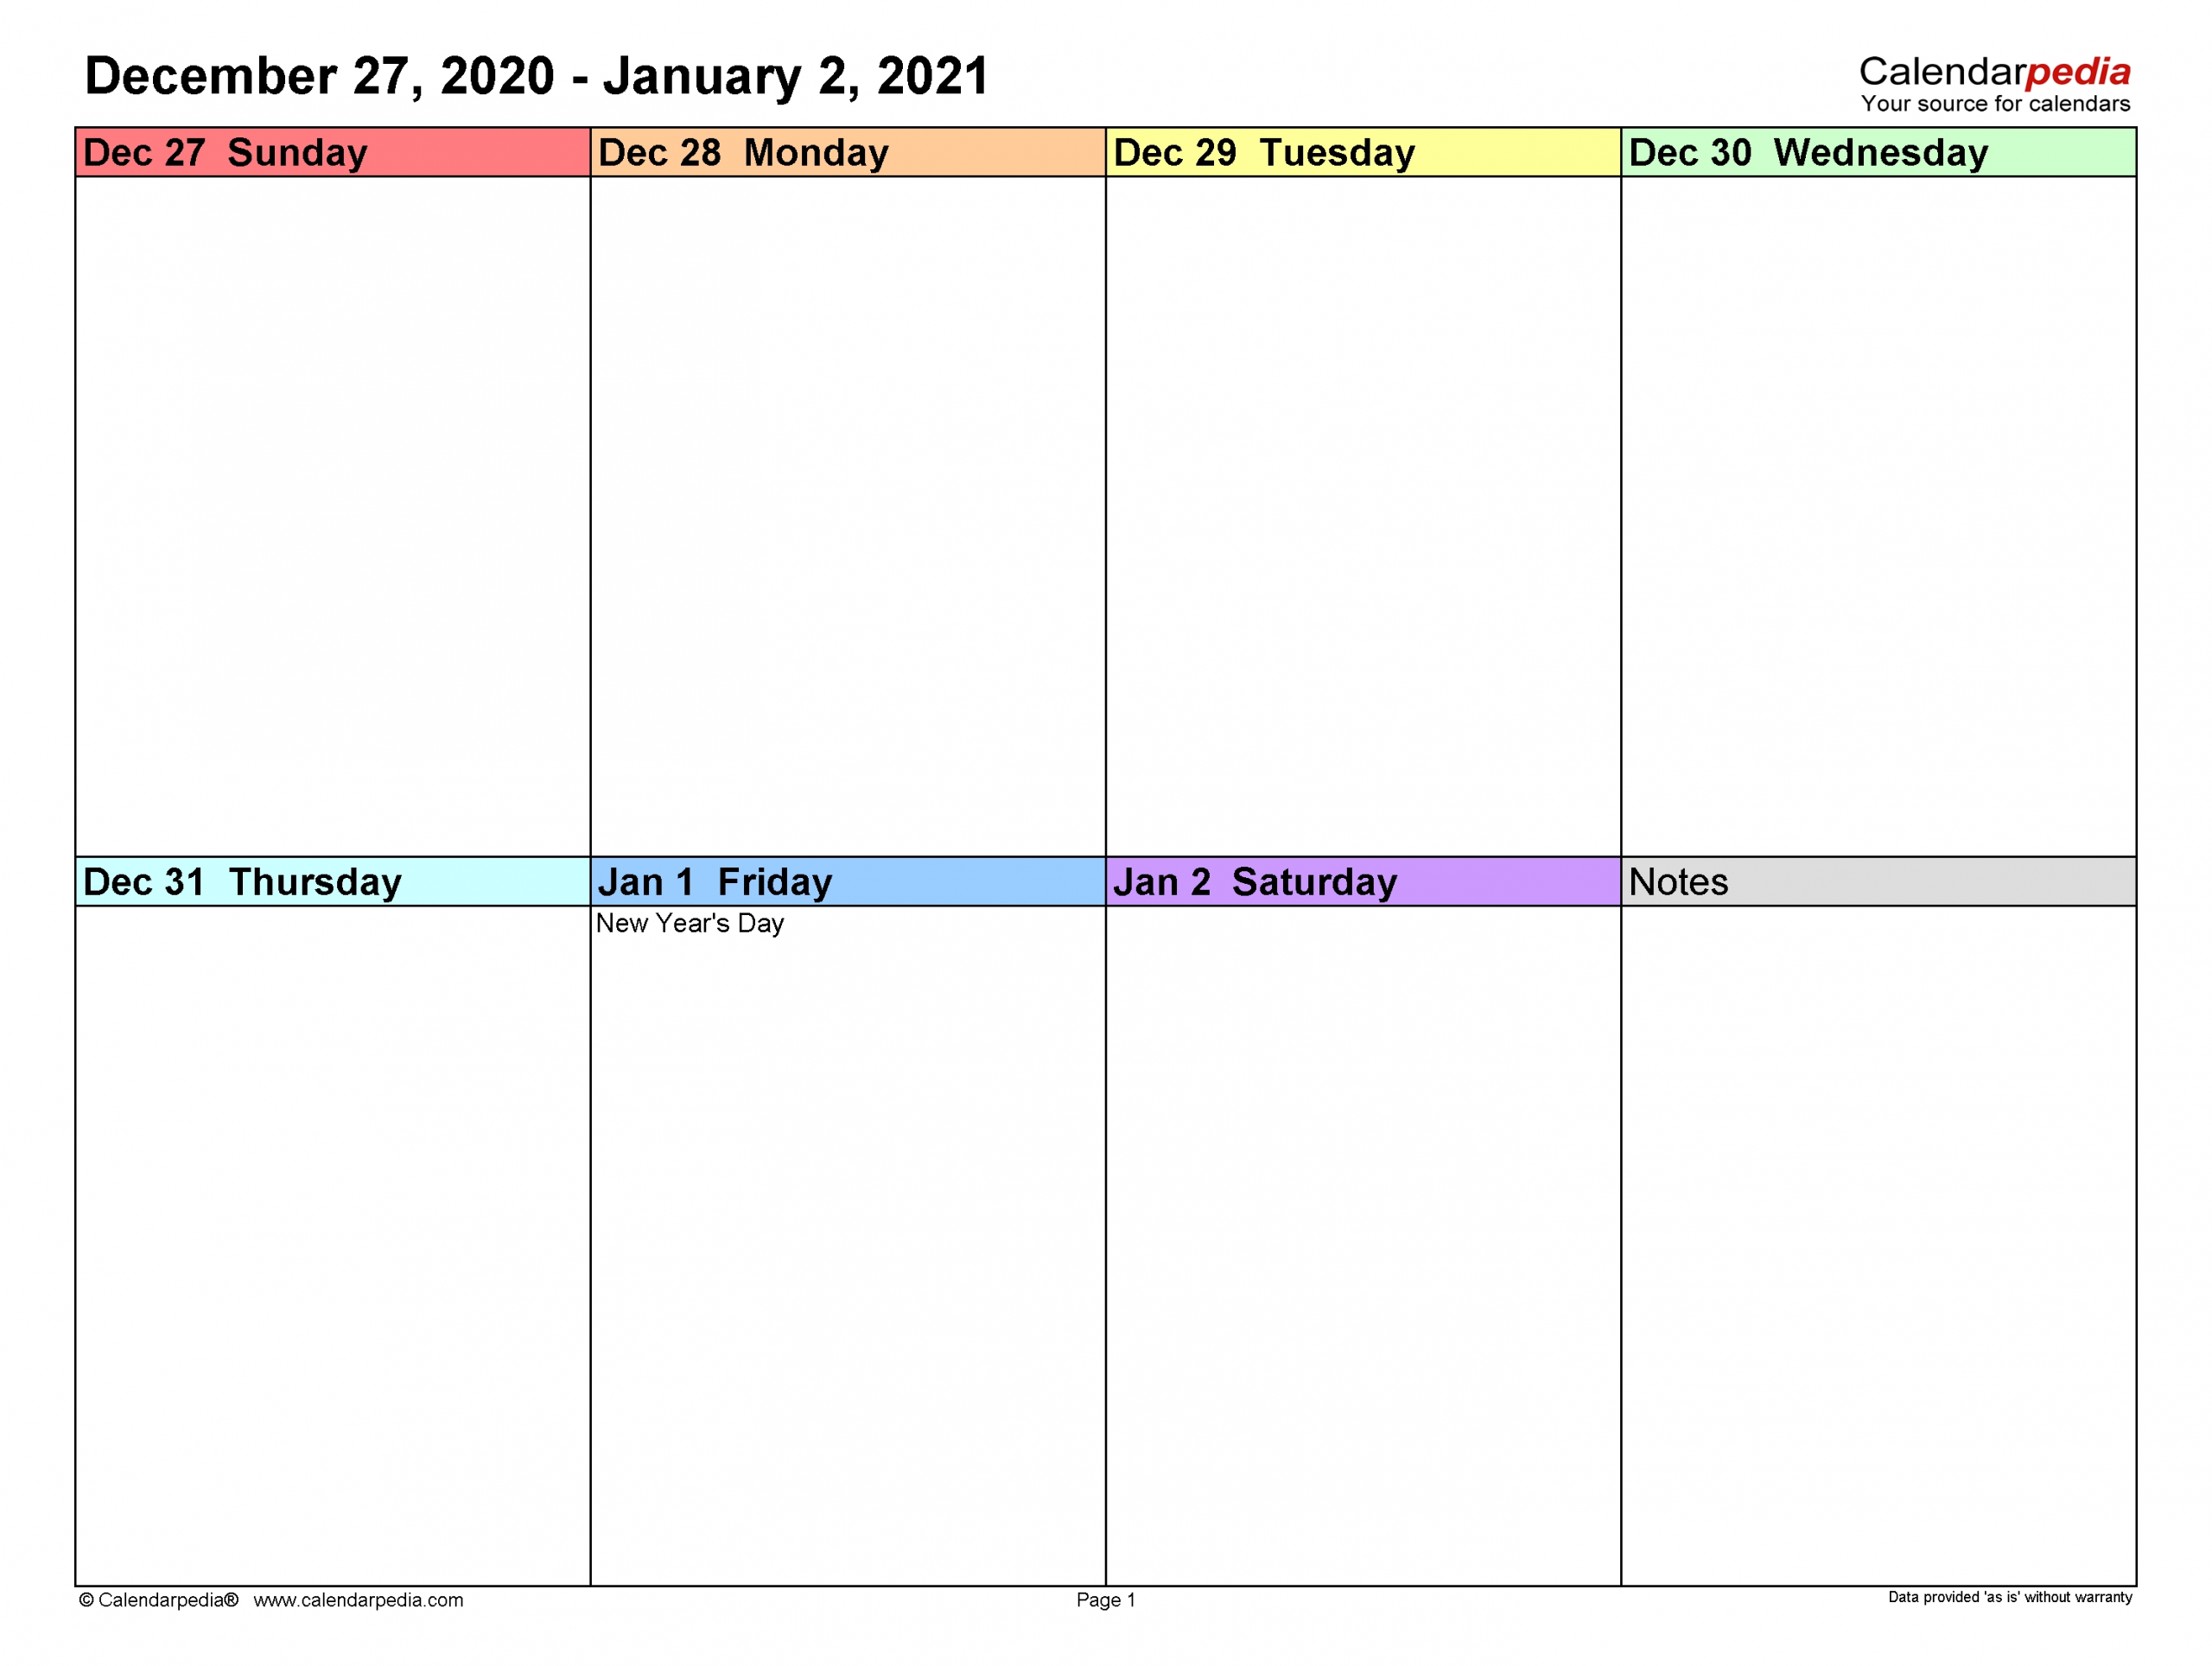 Weekly Calendars 2021 For Word - 12 Free Printable Templates-2021 Printable Calendars With Time Slots